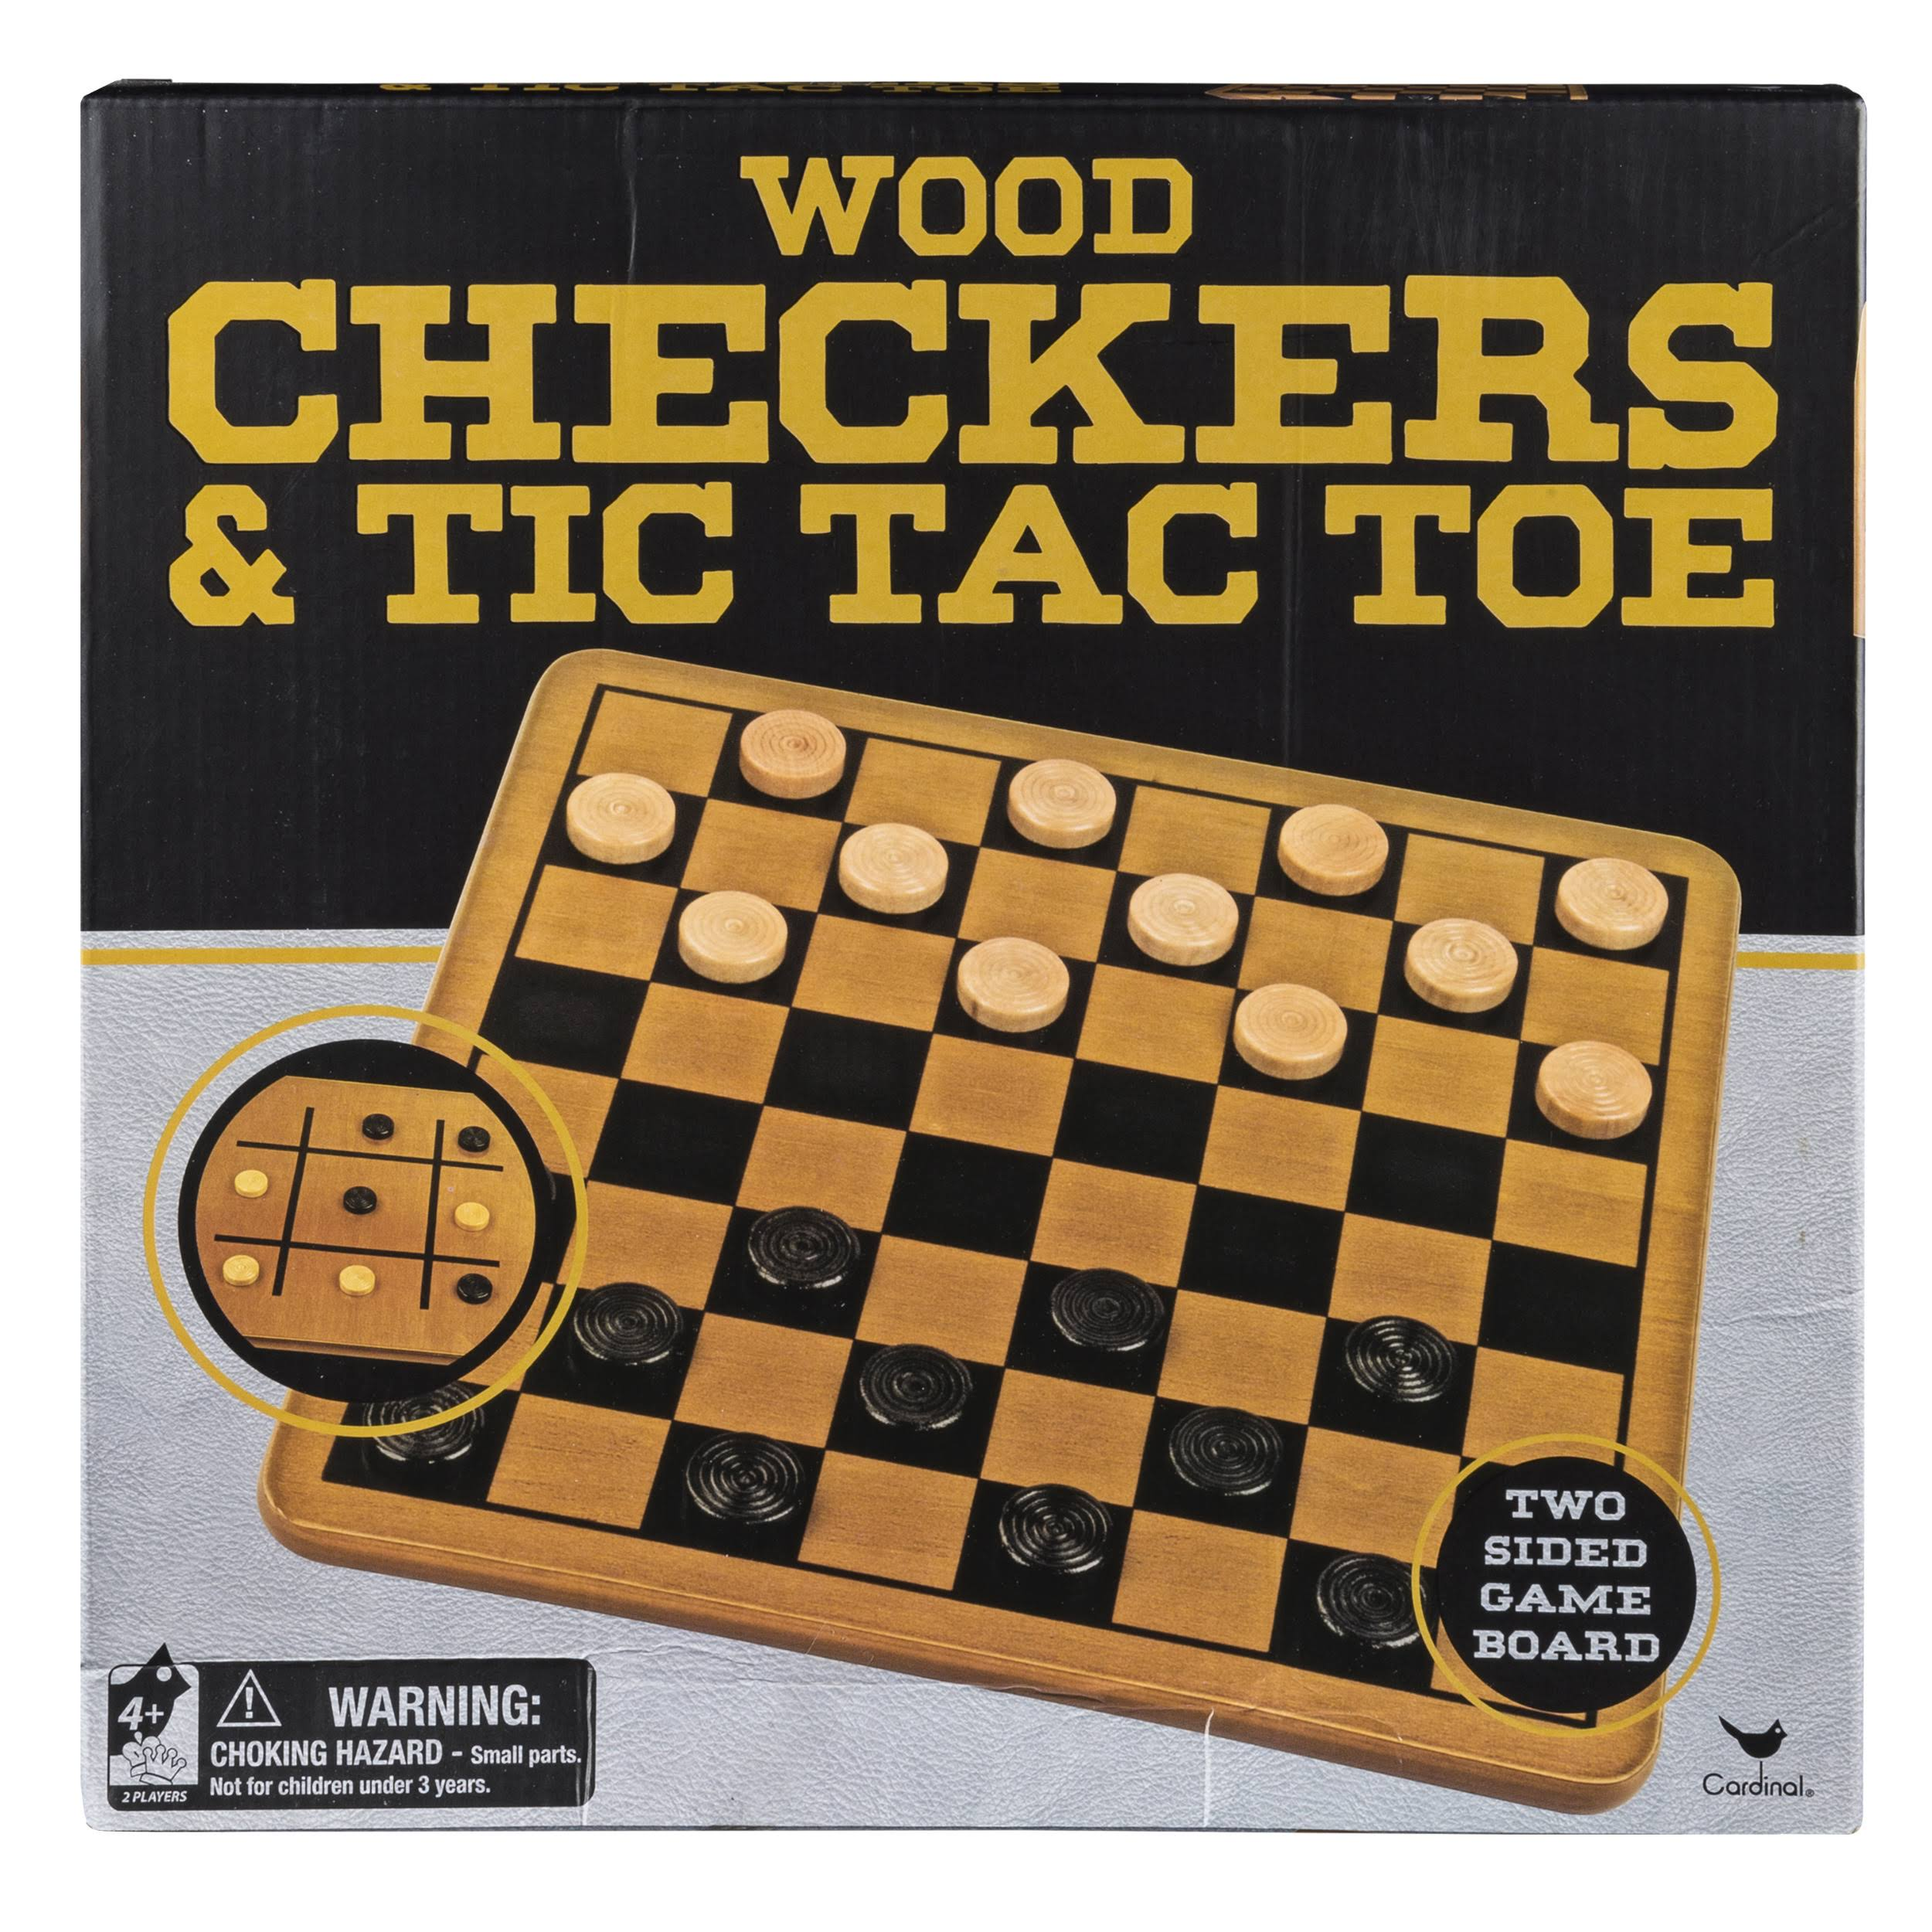 Cardinal Solid Wood Checkers and Tic Tac Toe Oak Finish Folding Board Game